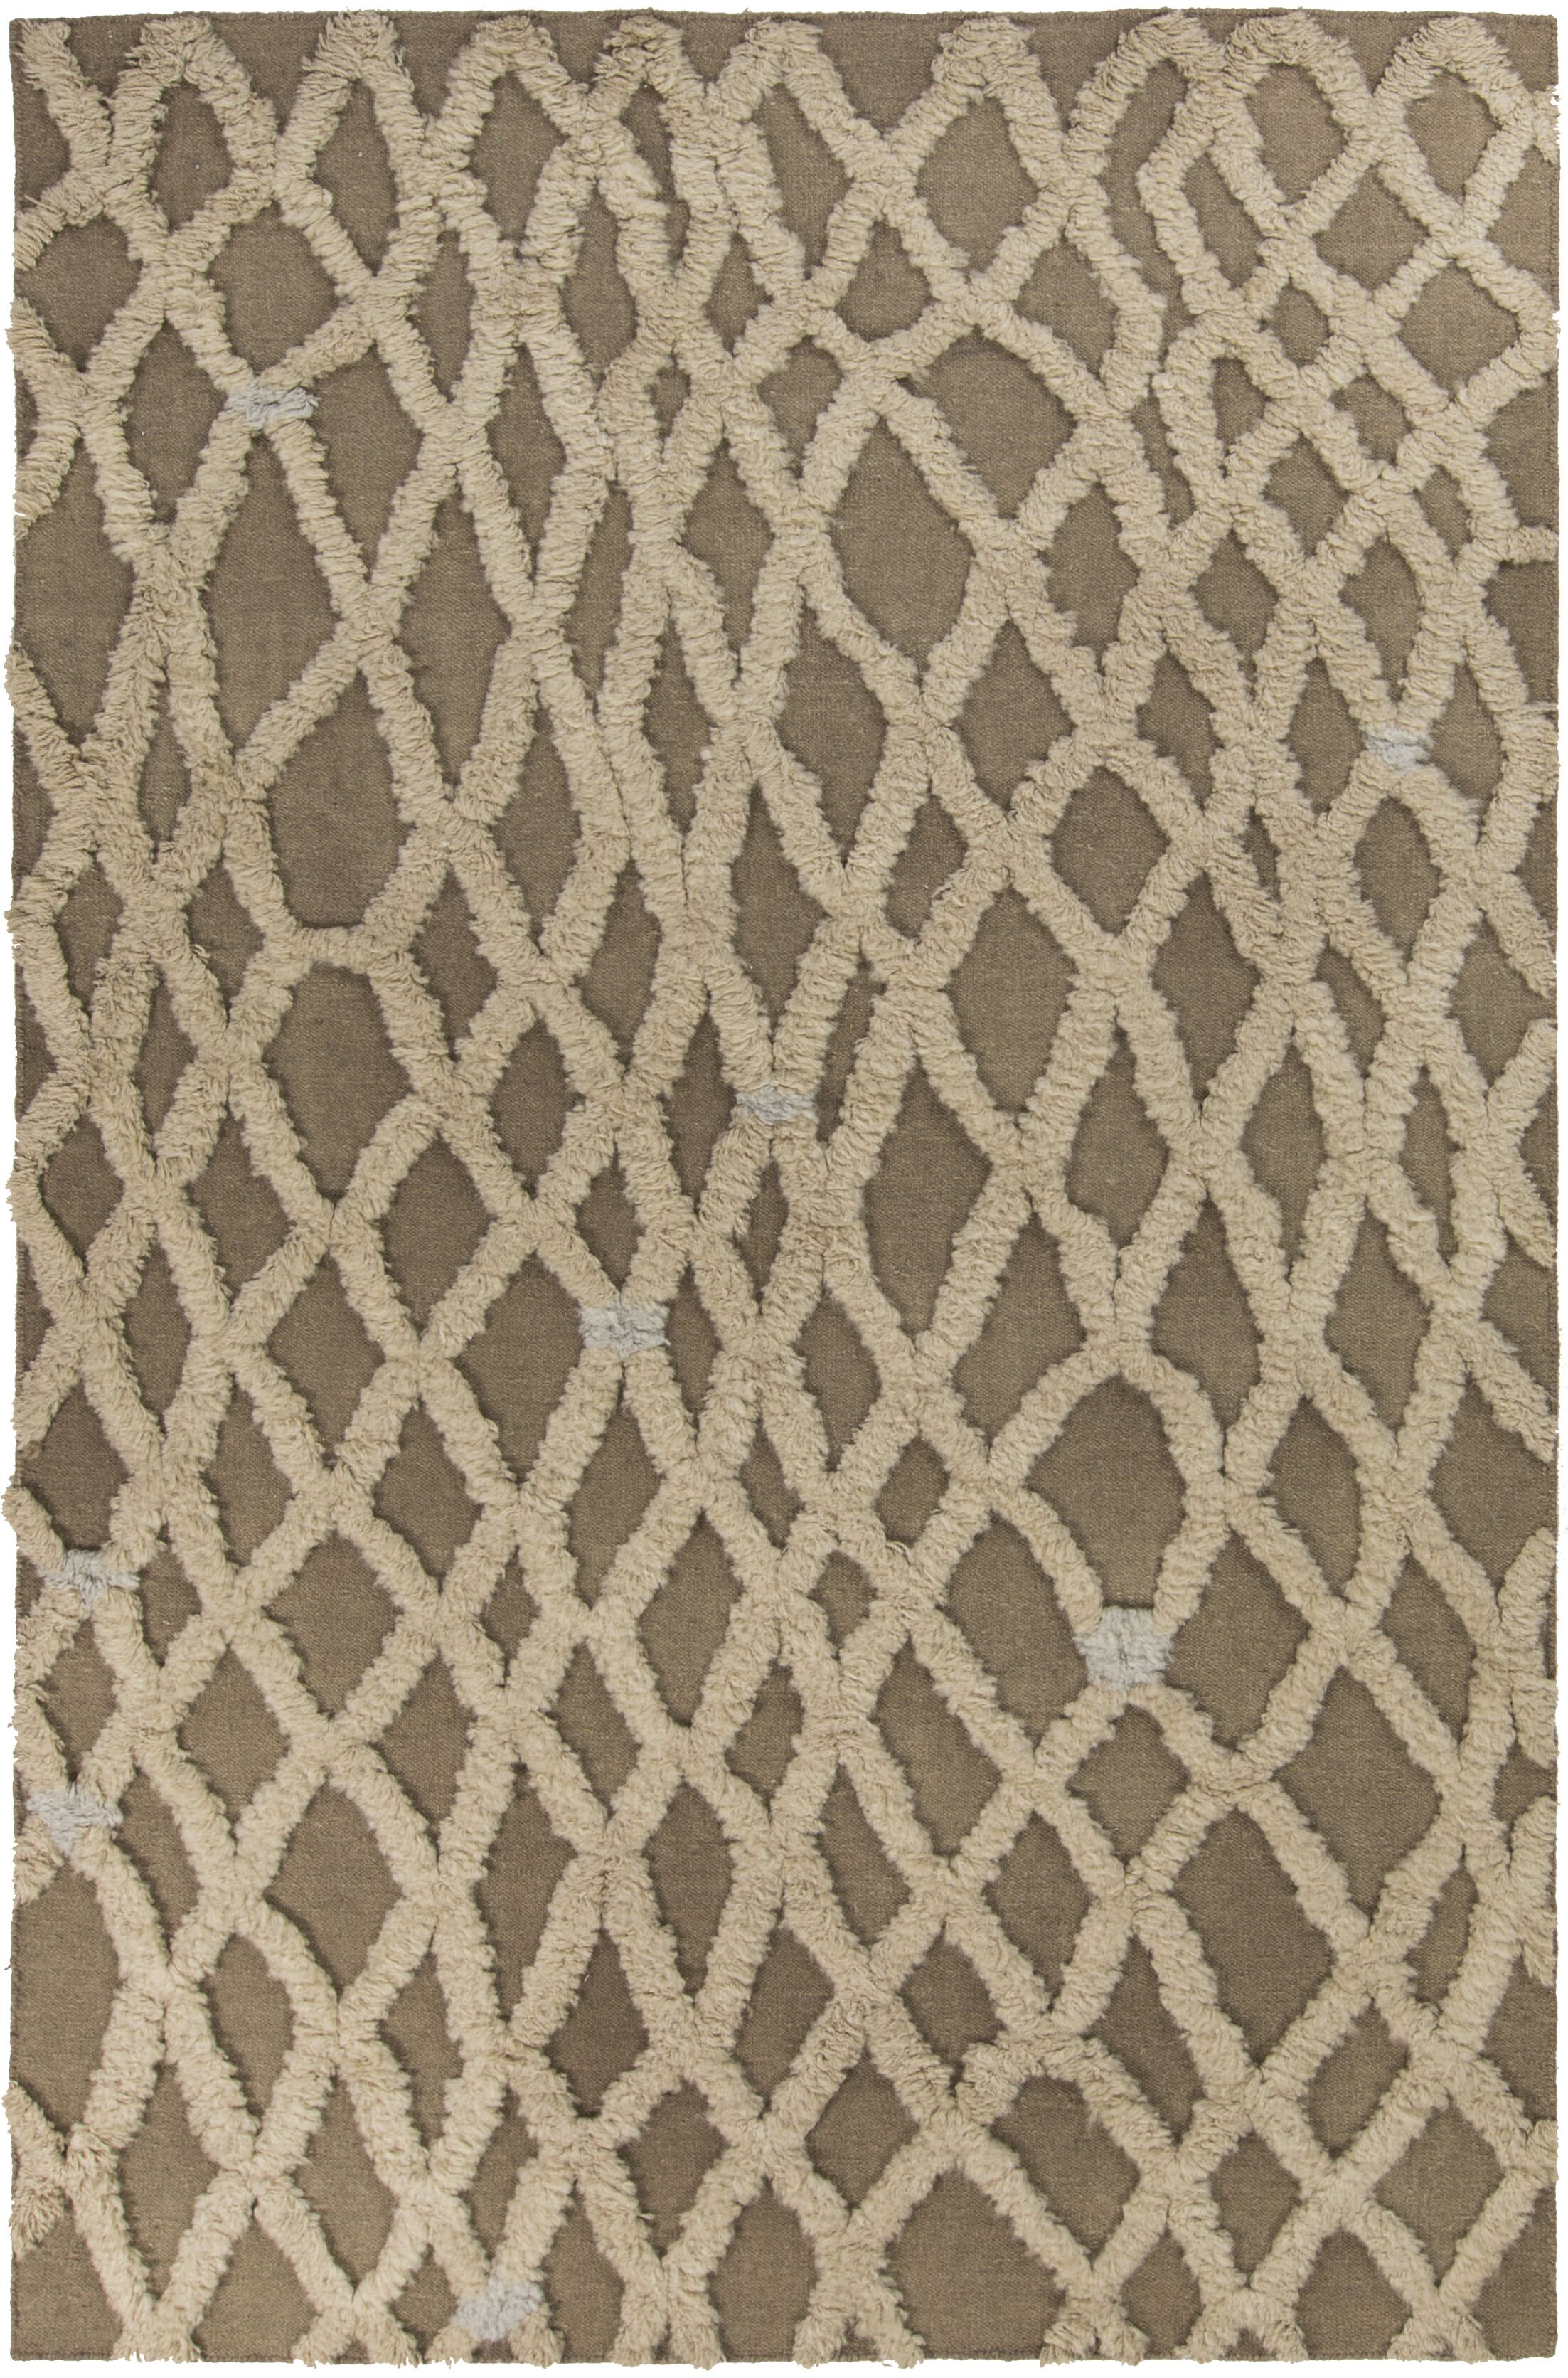 Aubriana Beige Rug Rug Size: Rectangle 5' x 8'